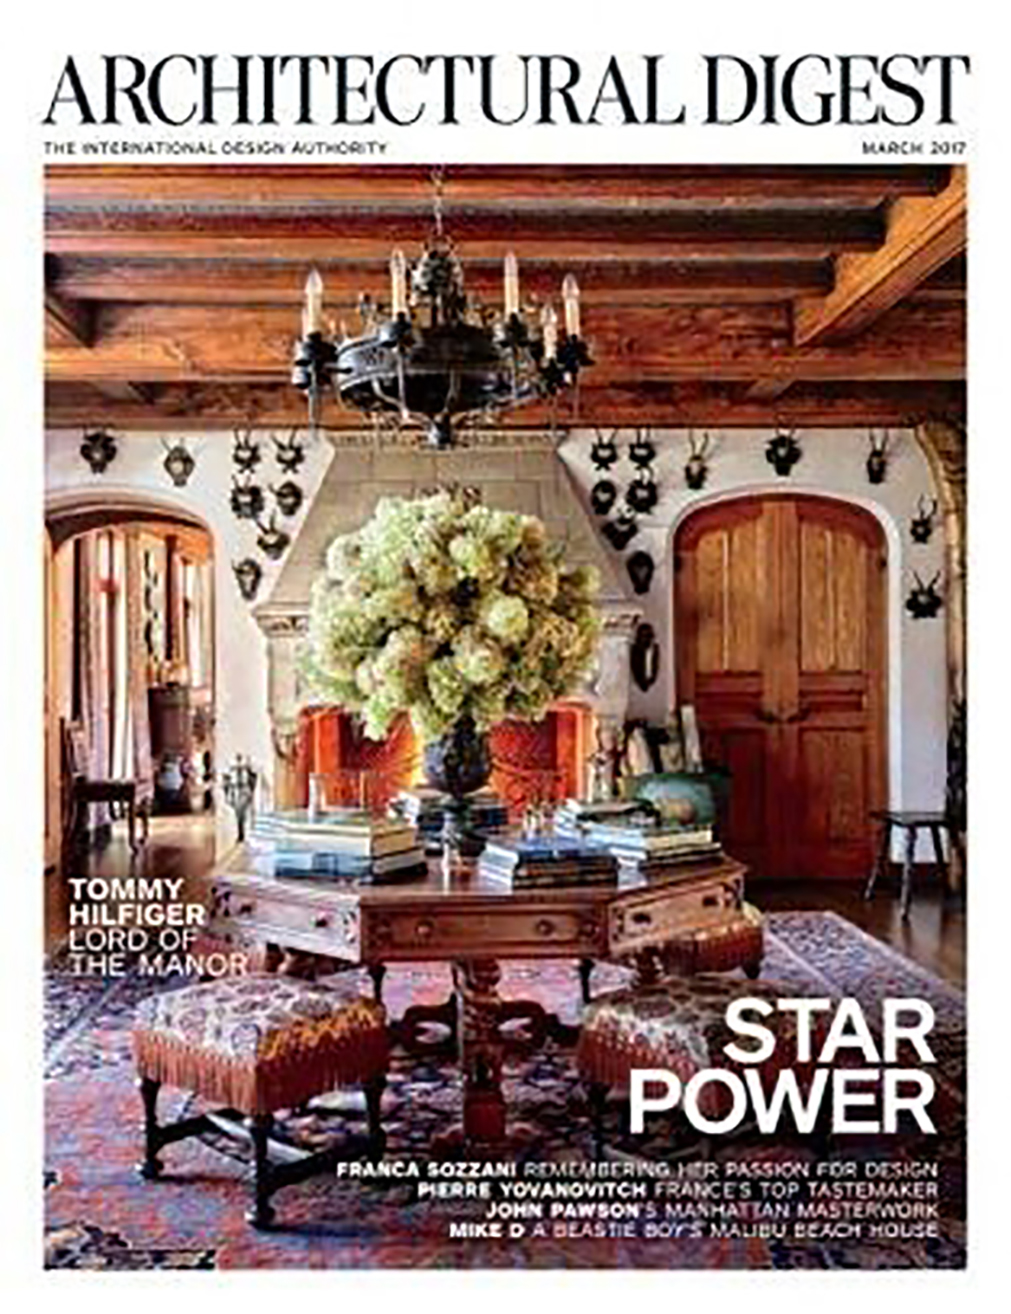 Architectural Digest cover story of Tommy Hilfiger's home with hardware by H. Theophile